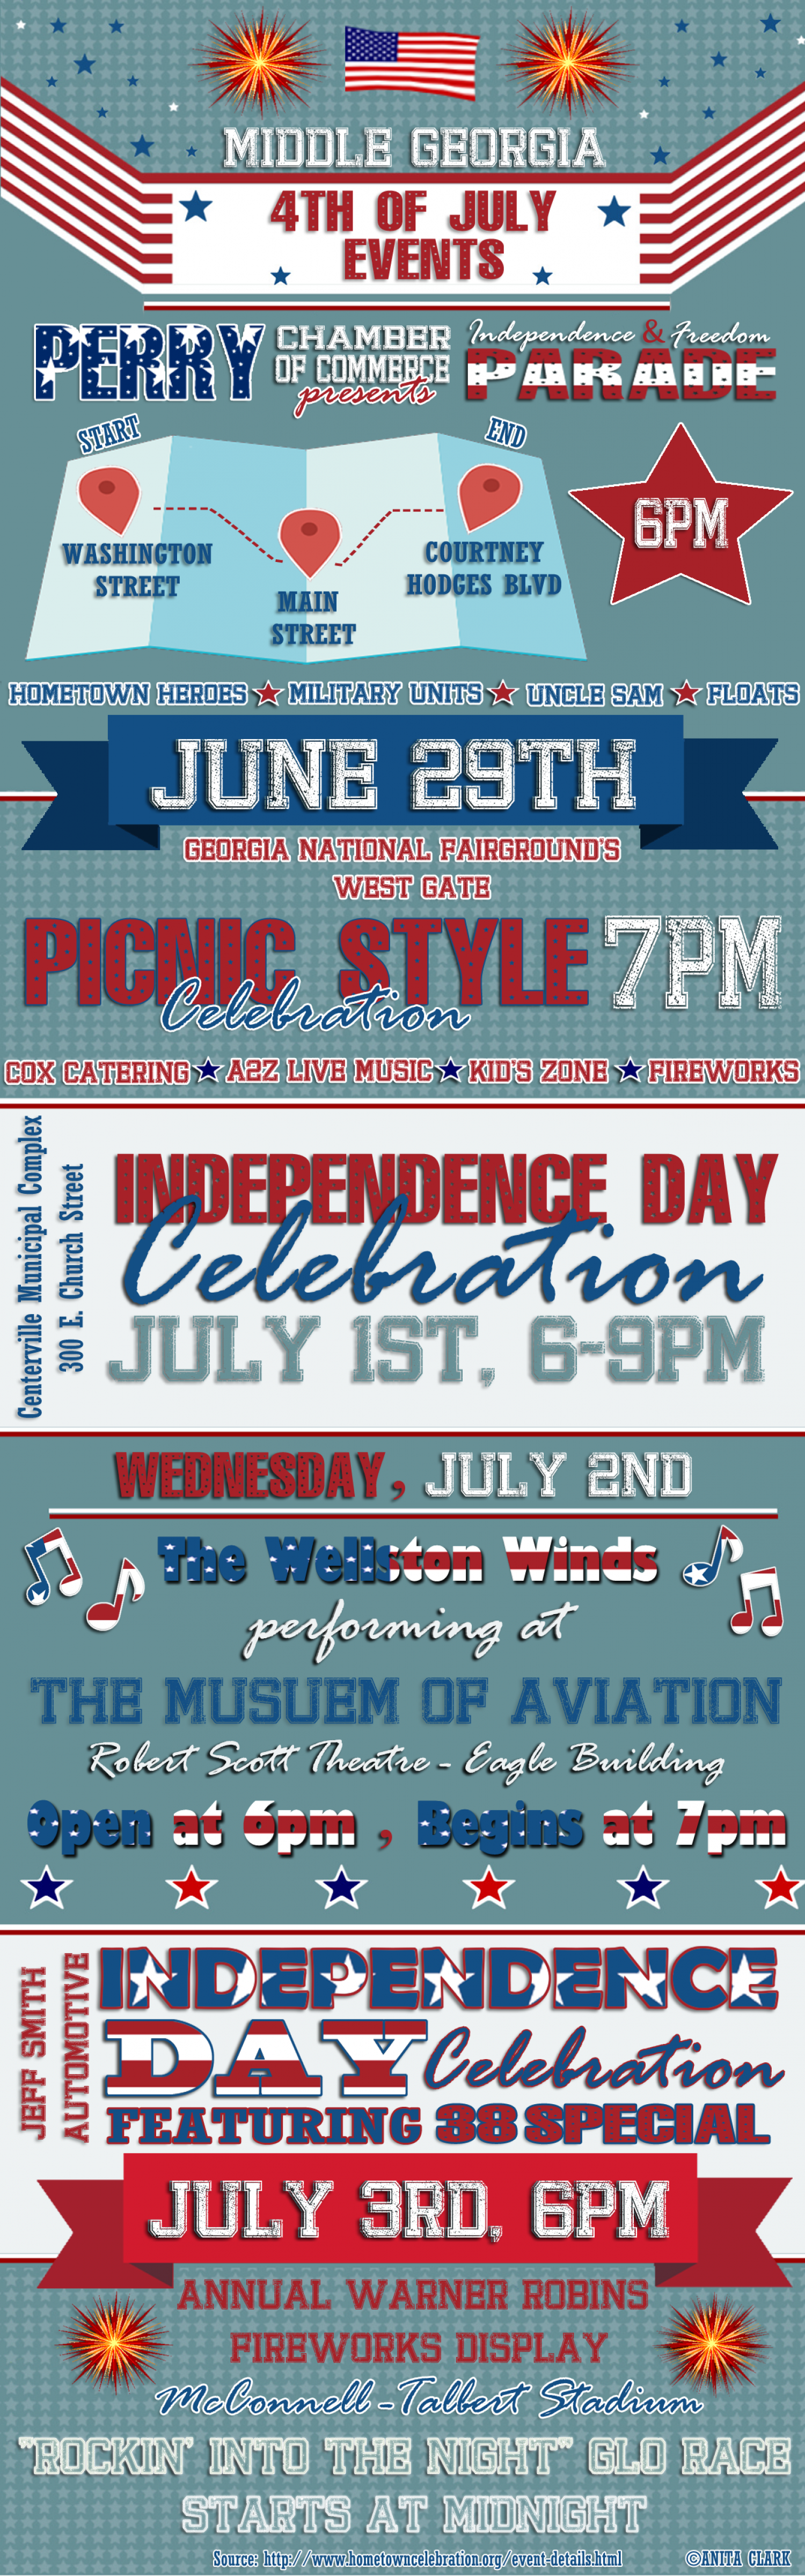 Middle Georgia 4th of July Events Infographic